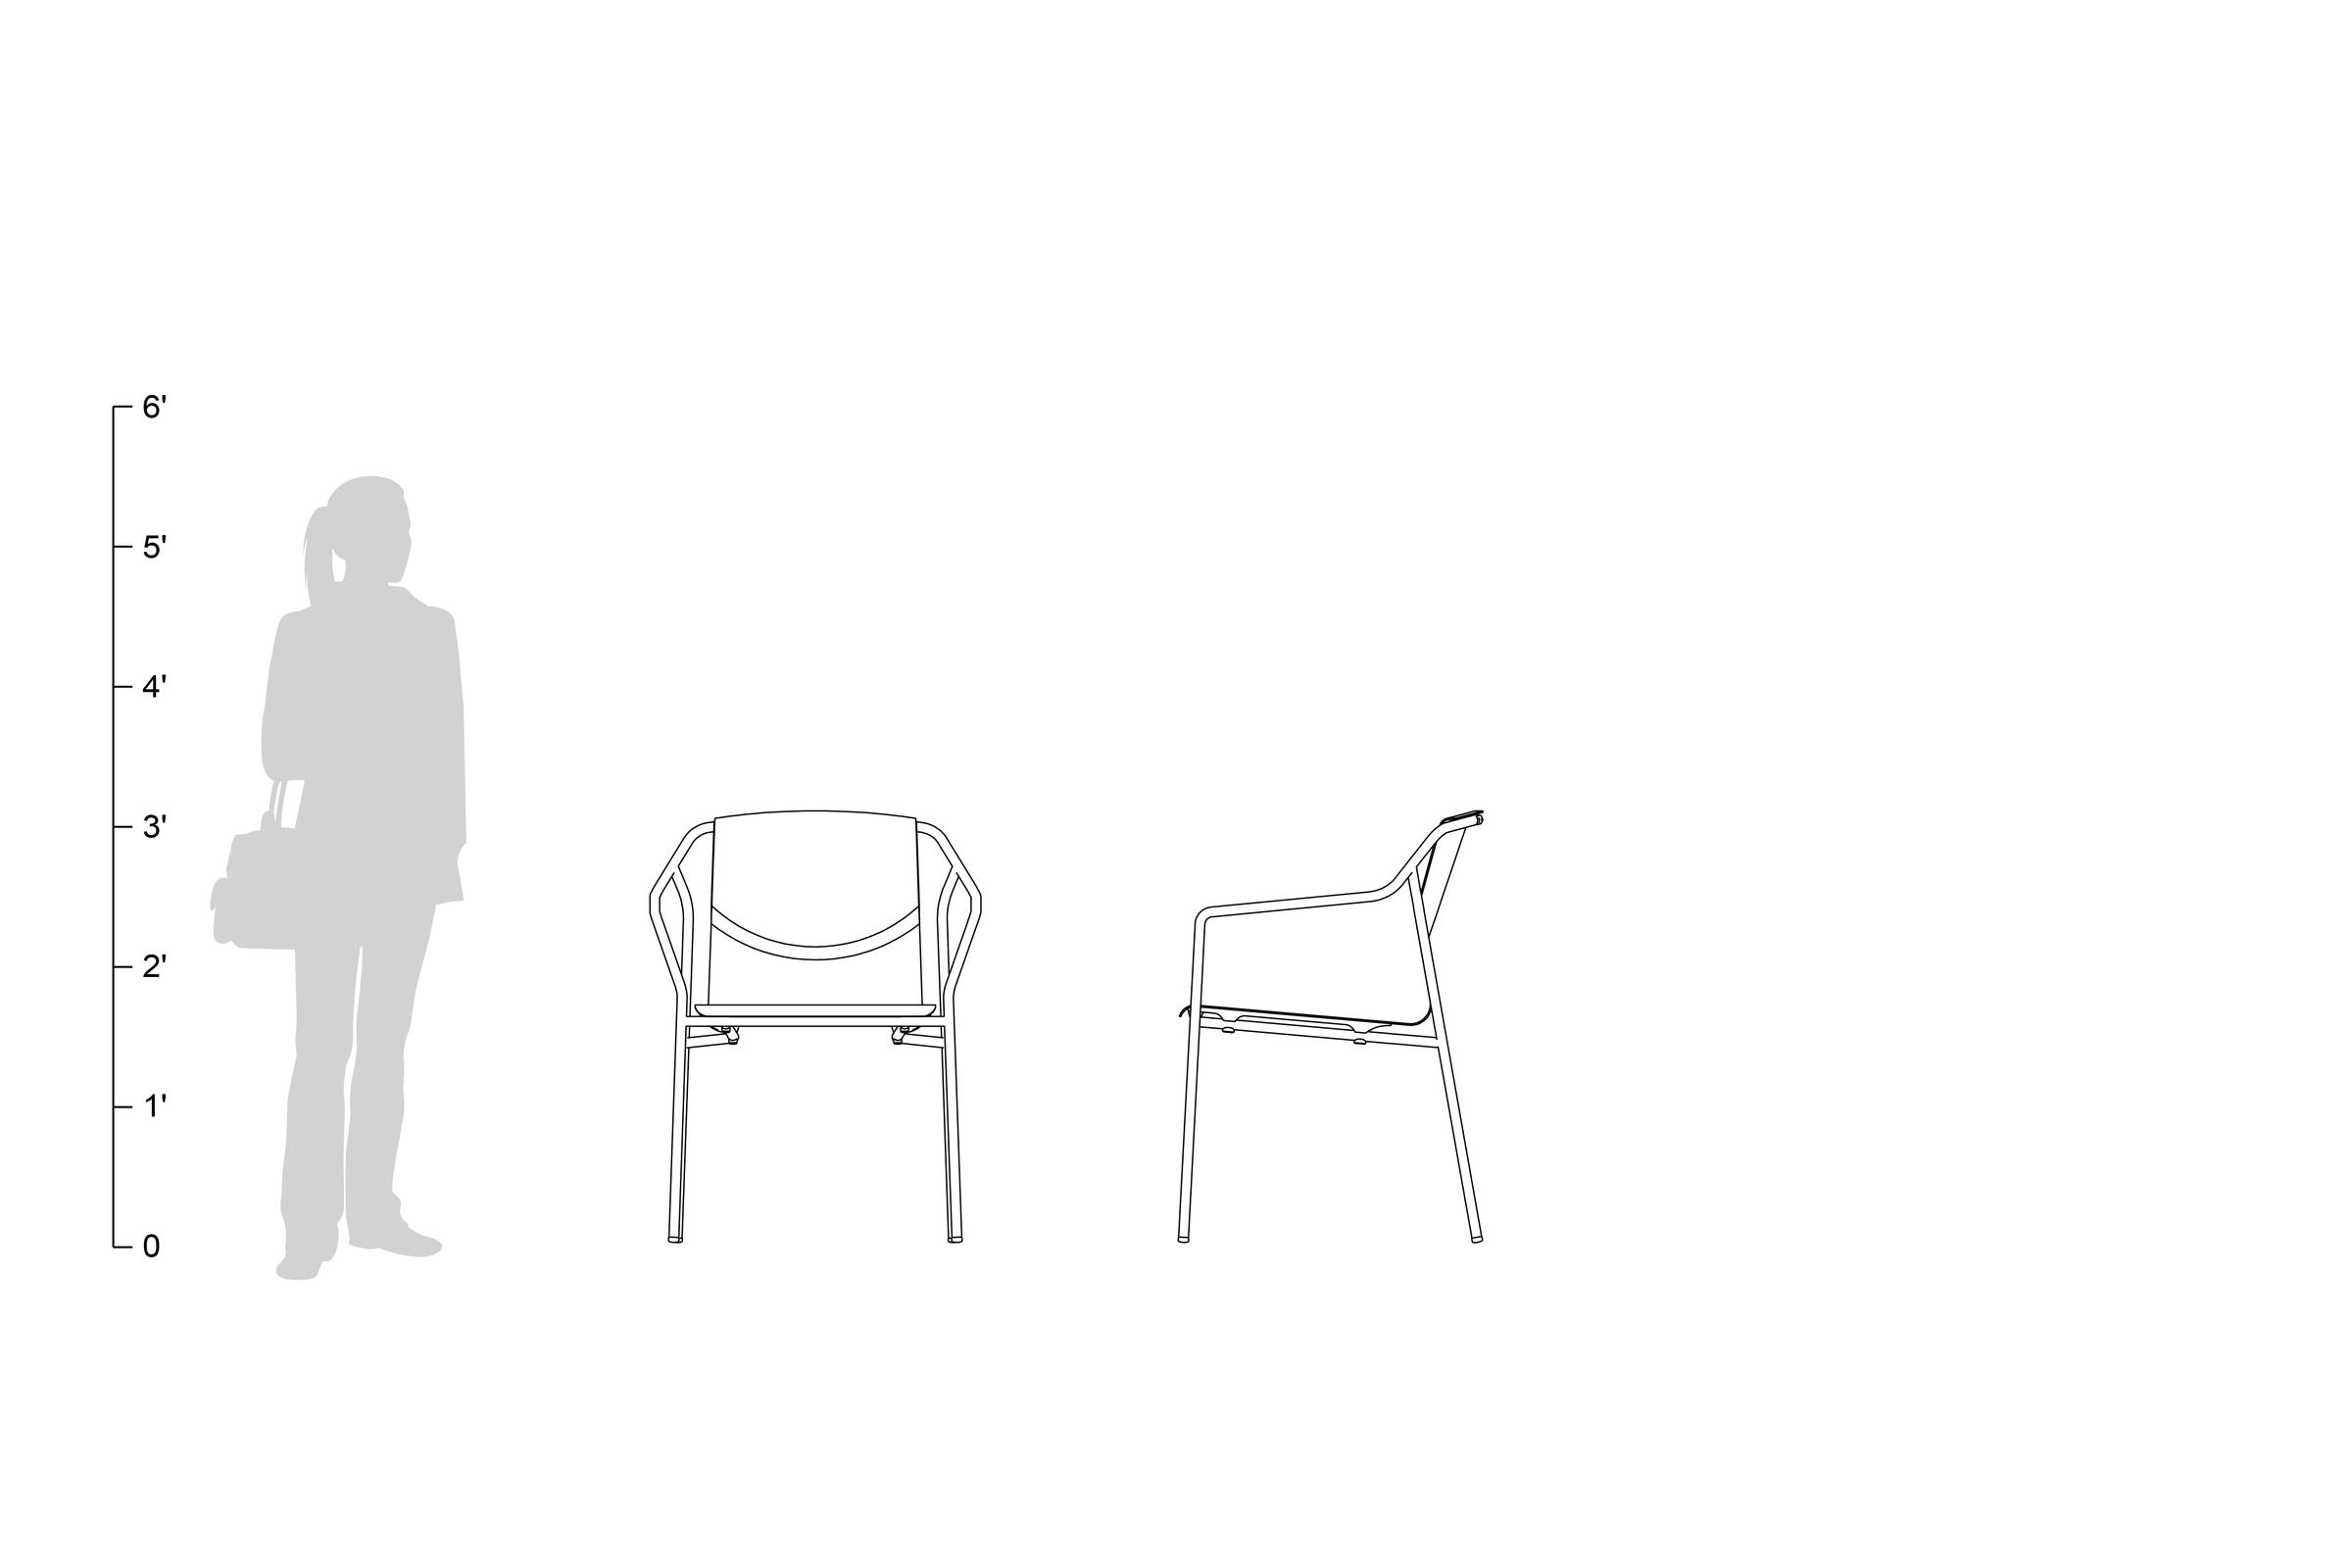 Factor Chair, formed aluminum seat and back, with arms, shown to scale